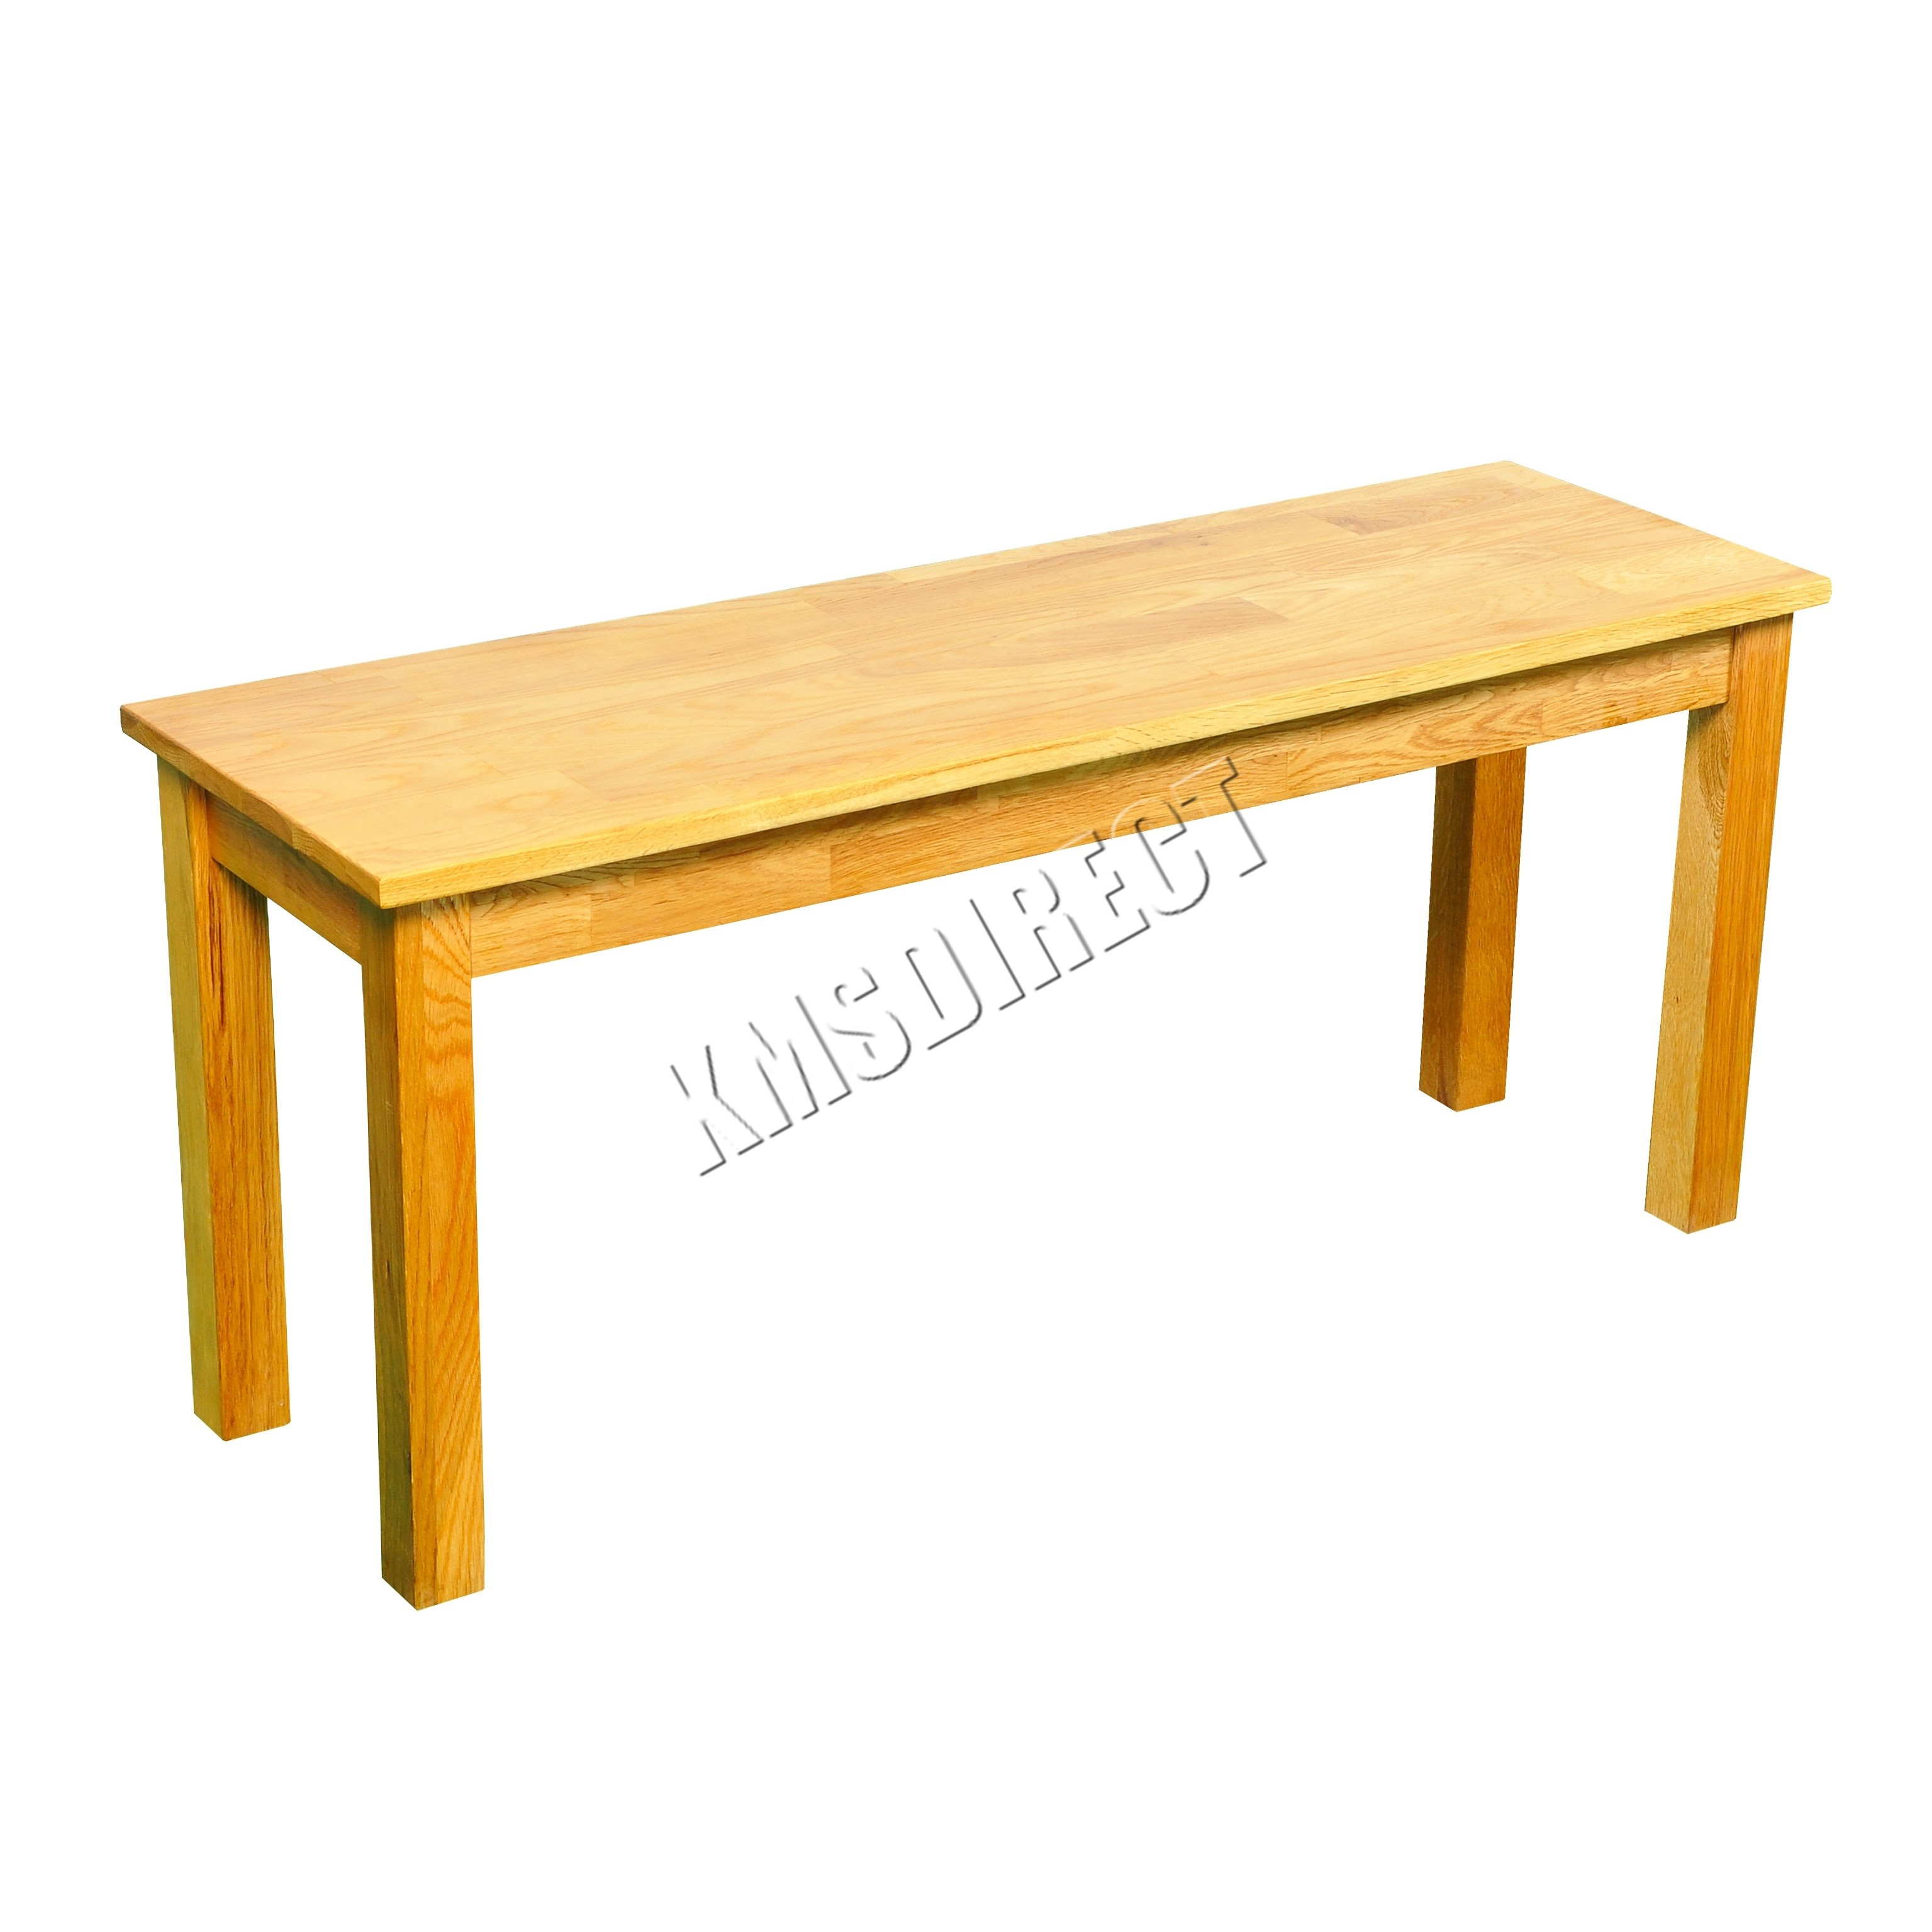 Foxhunter Solid Oak Furniture Dining Bench Wooden Seat Coffee Table Fh Of04 Ebay